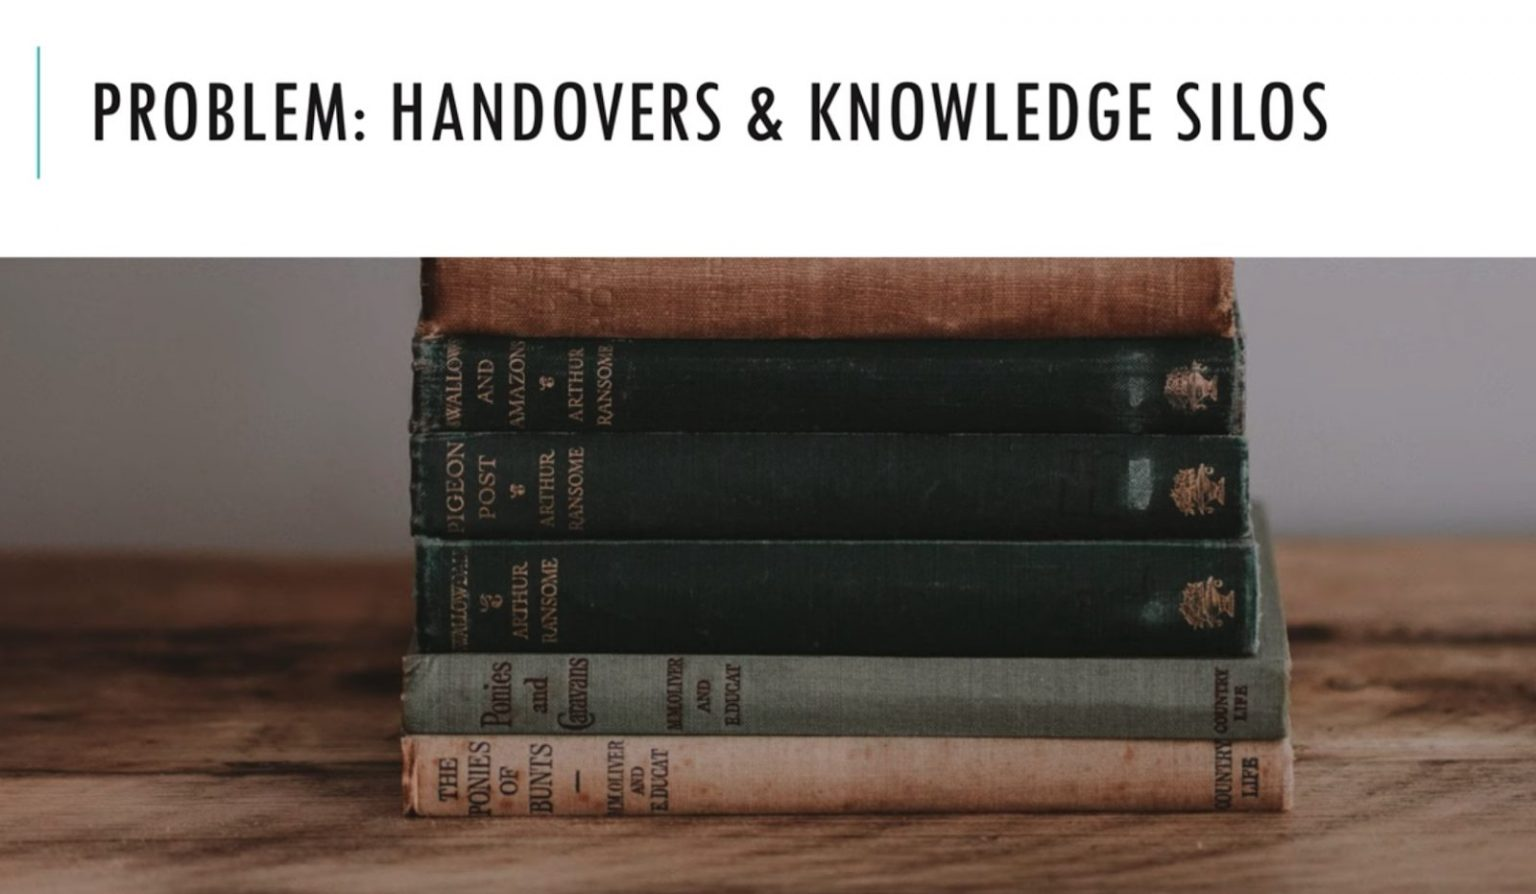 Handovers and knowledge silos